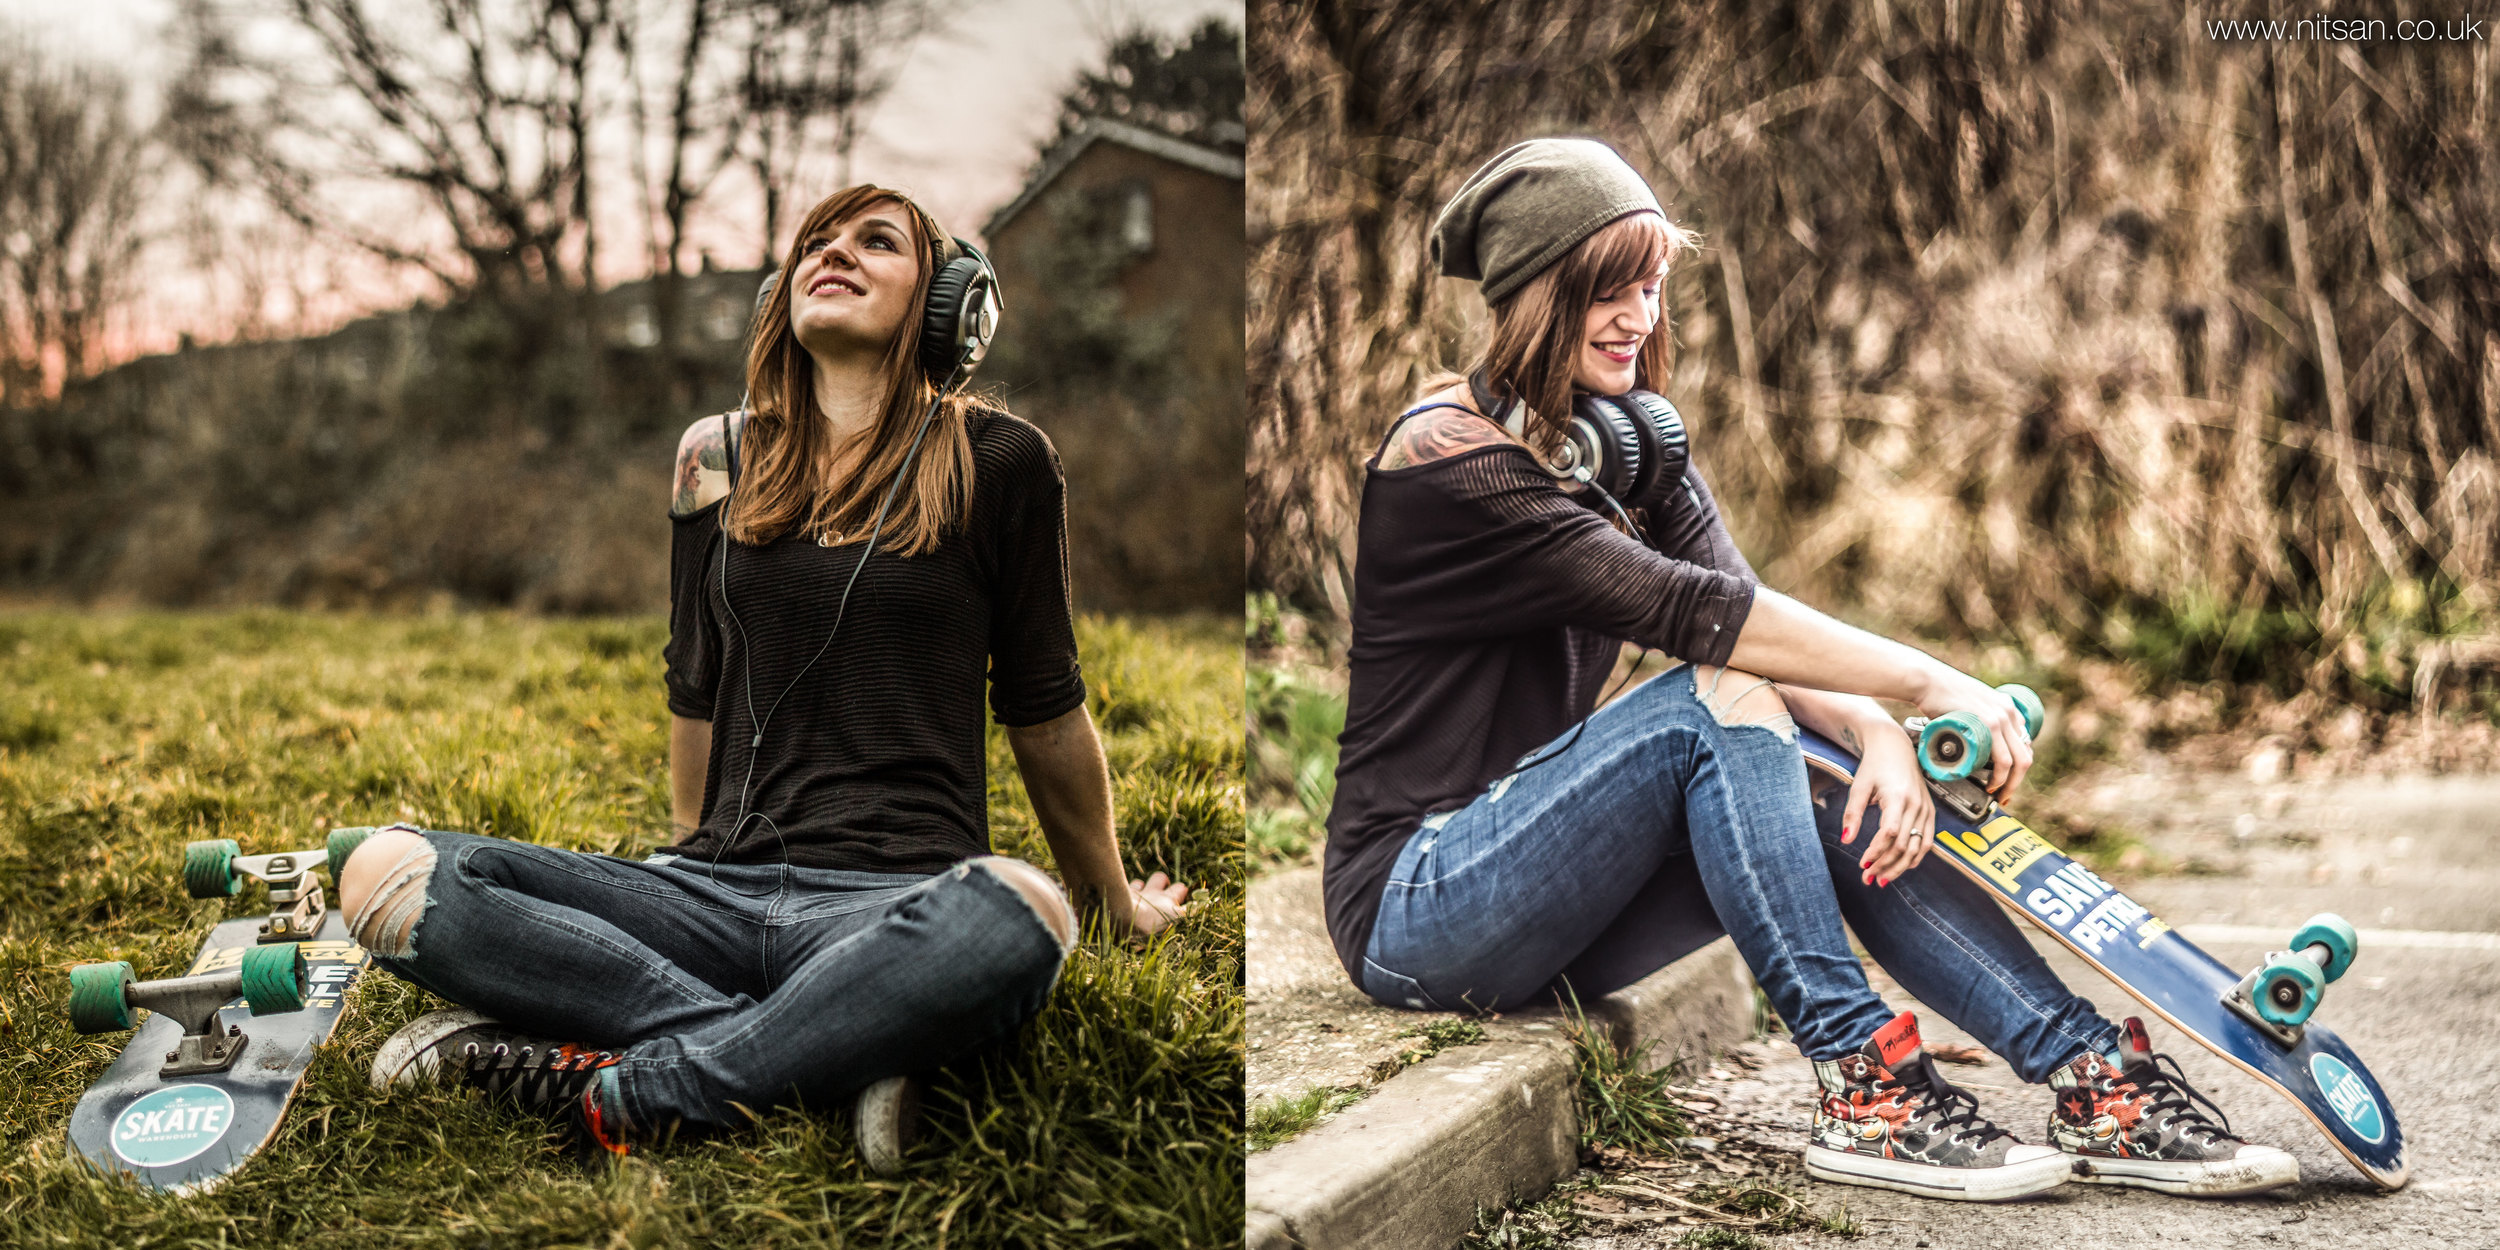 Left: 5D Mark III and Samyang 35mm. Right: 5D Mark III and Helios 85mm f1.5.